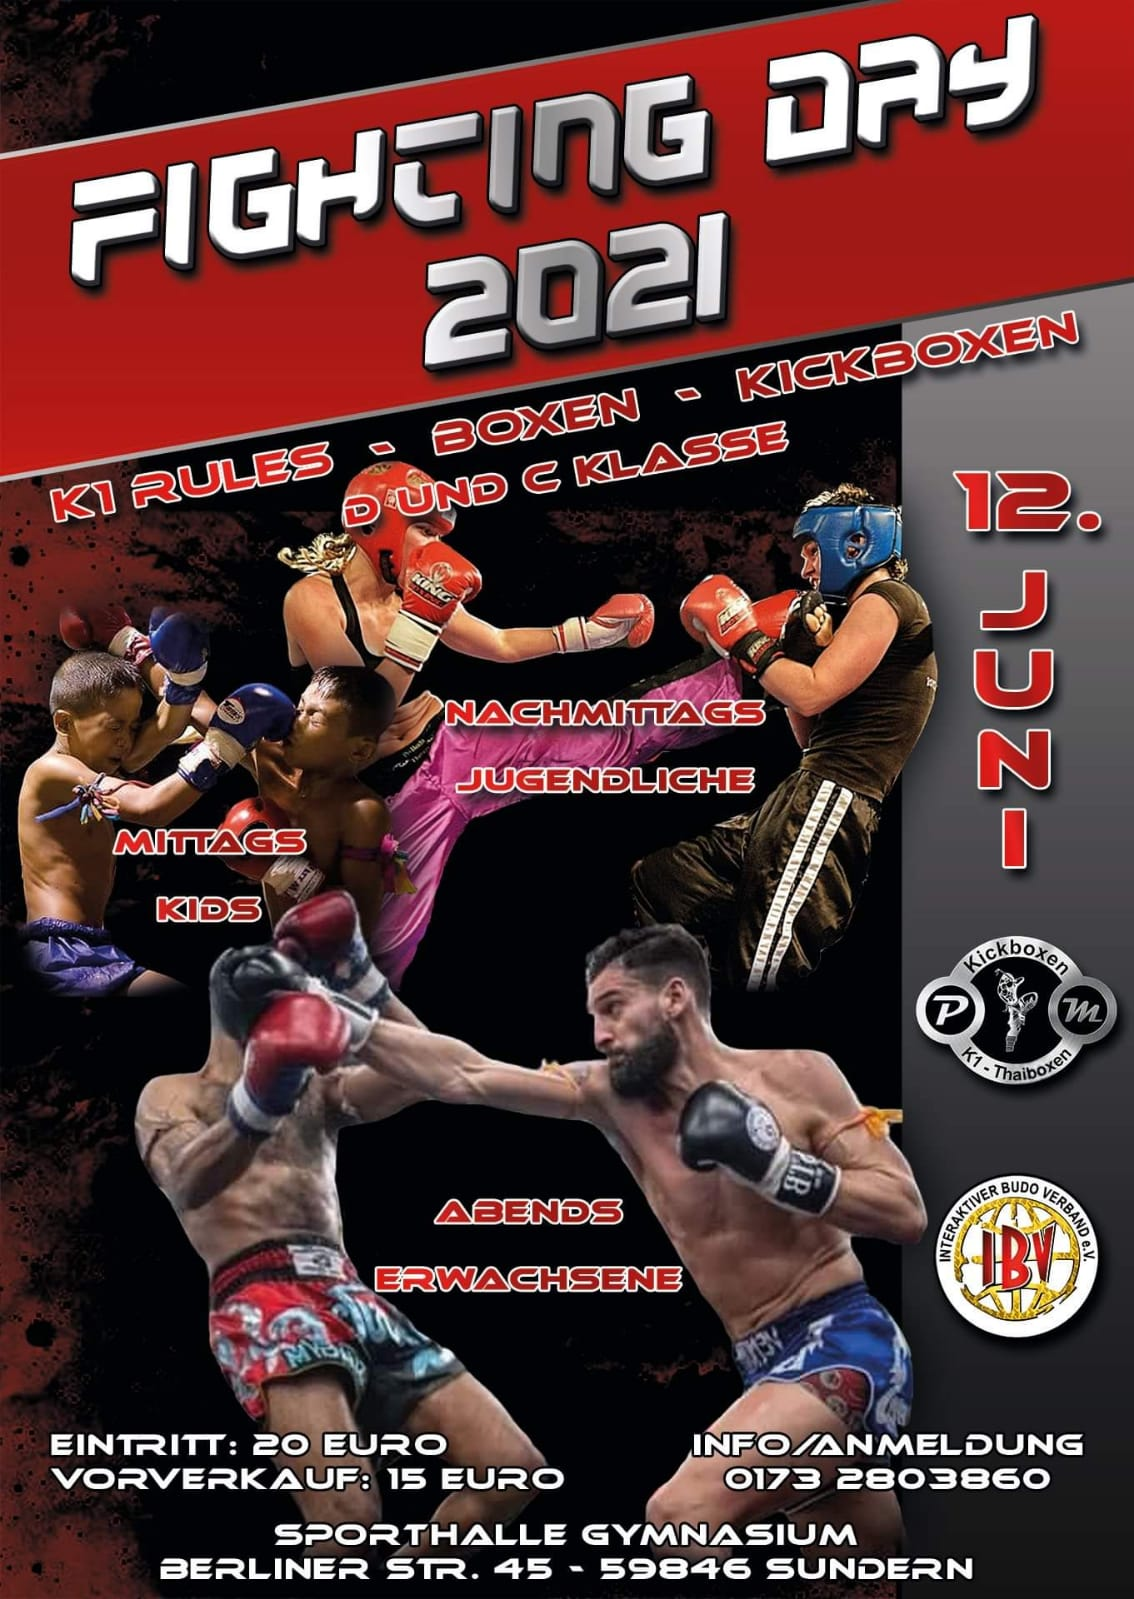 Fight Day 2021 12 Juni 2021